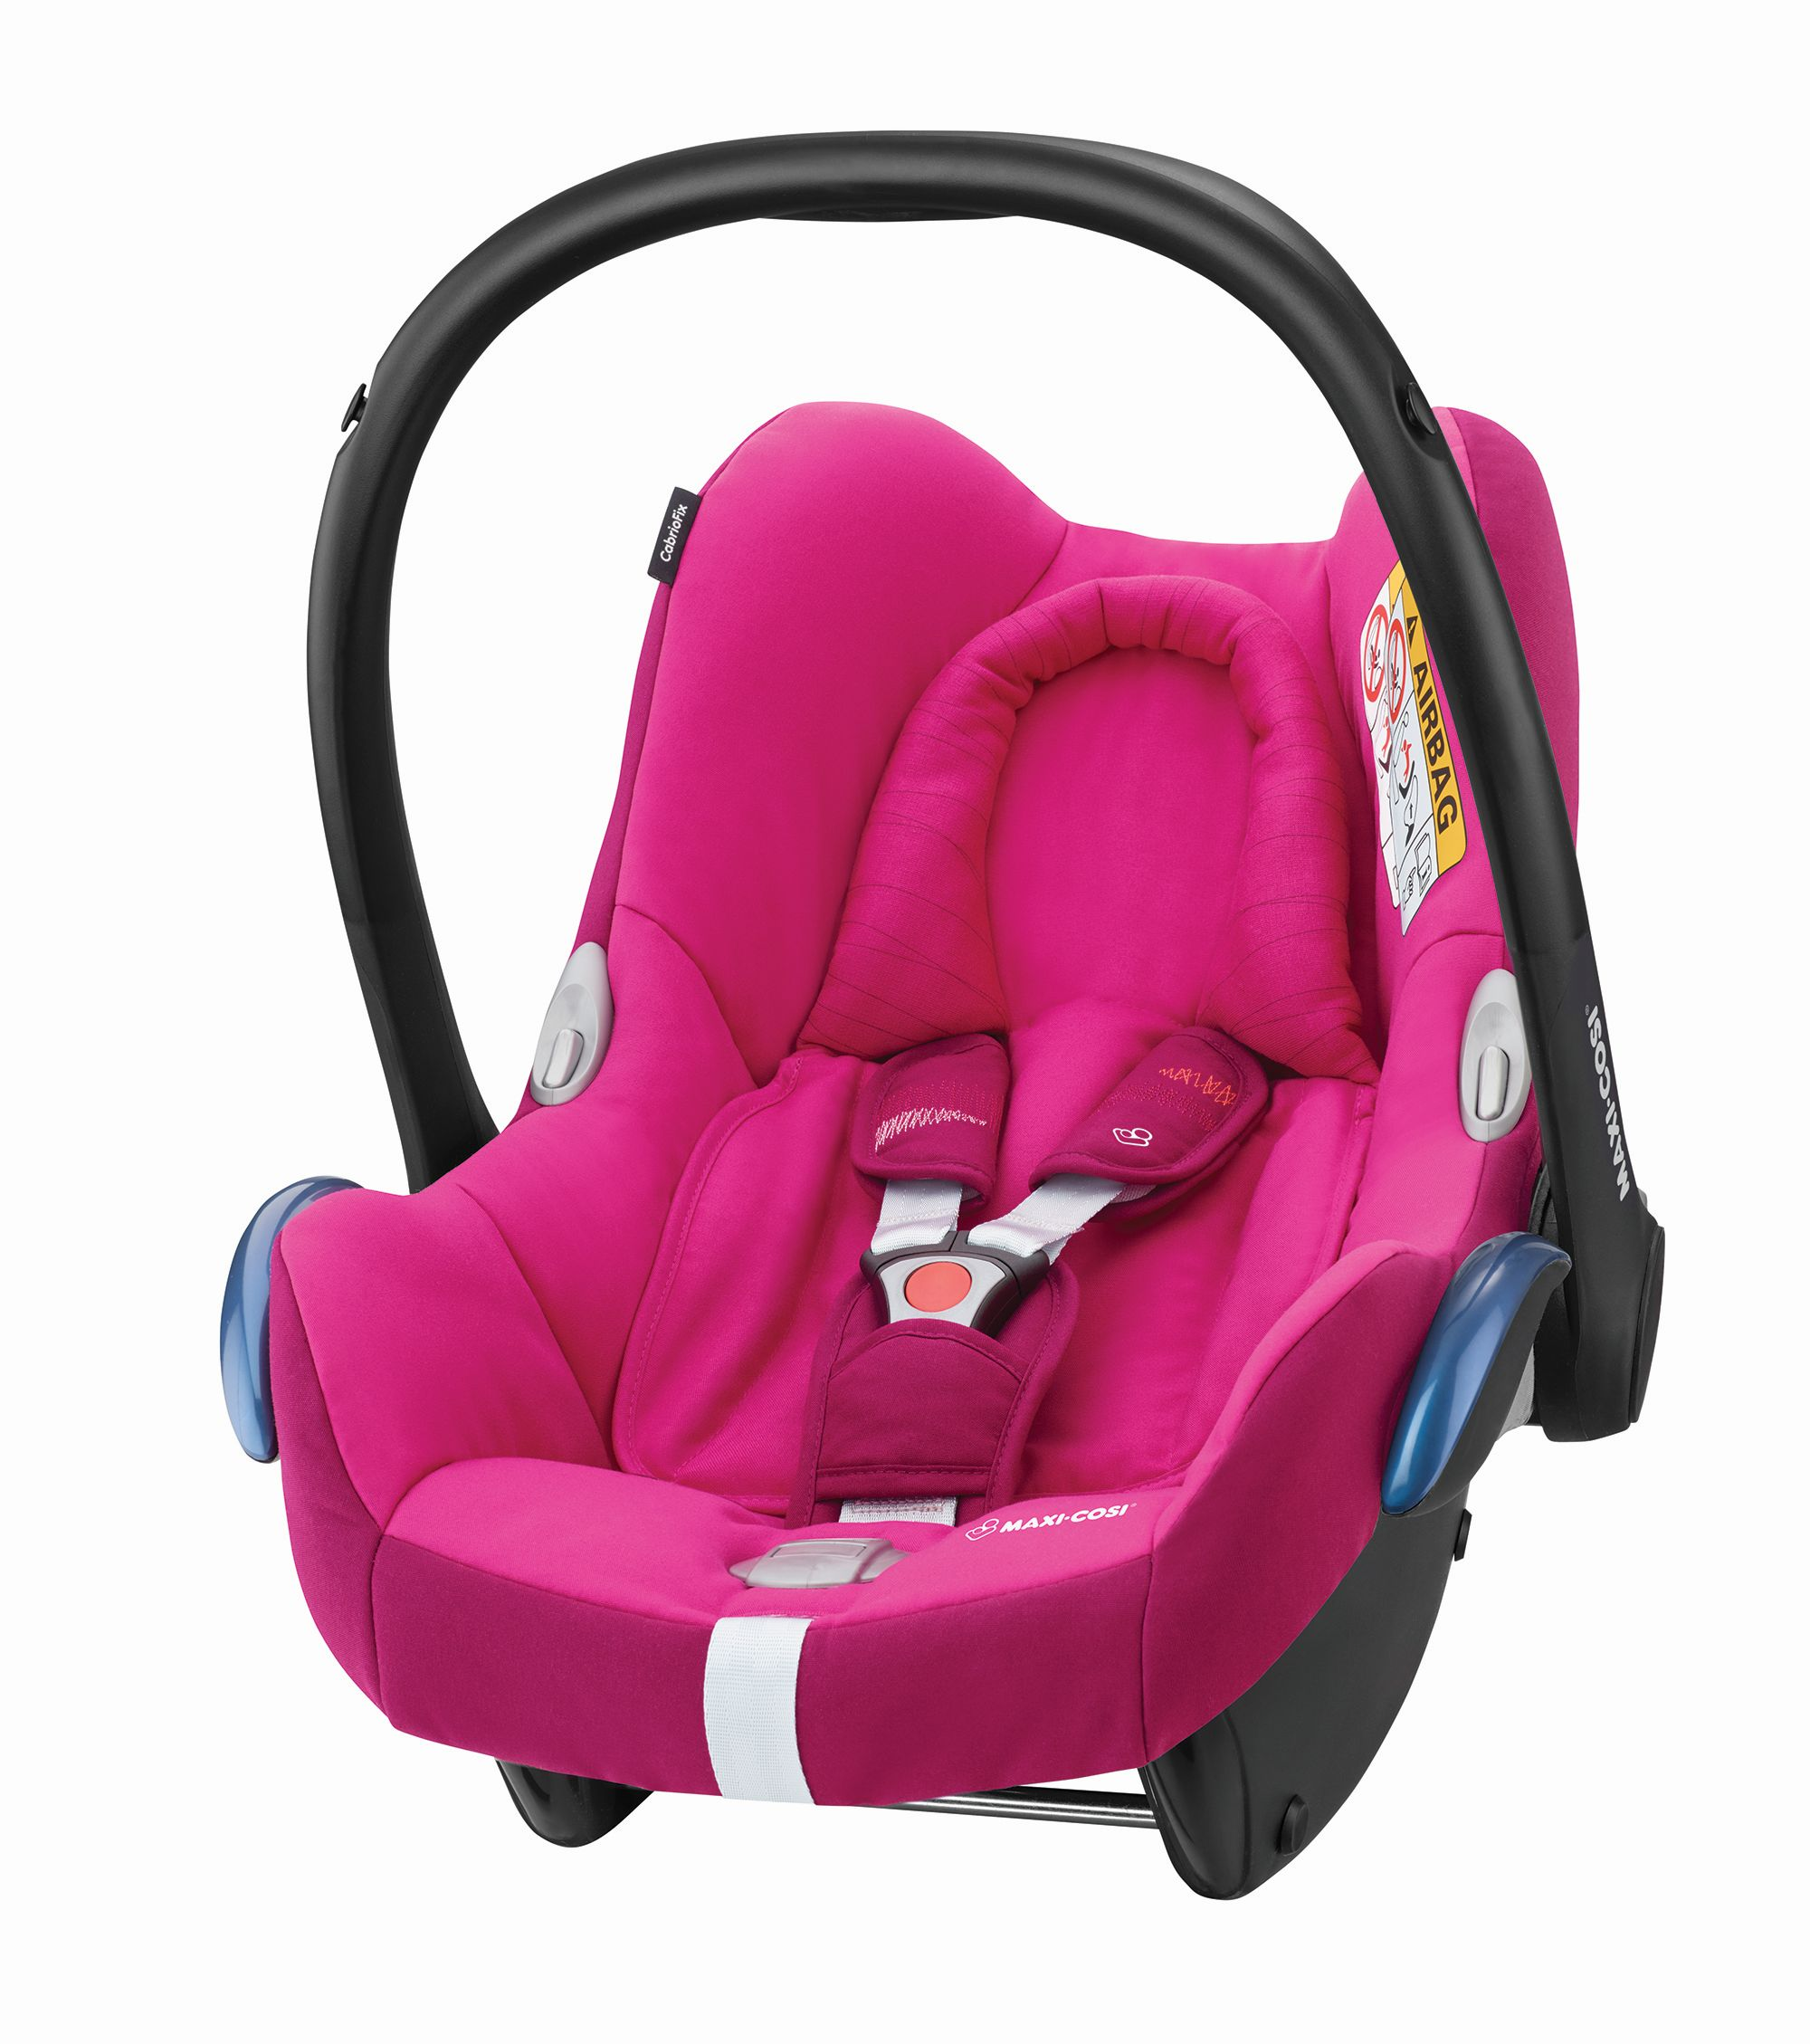 maxi cosi infant car seat cabriofix 2018 frequency pink buy at kidsroom car seats. Black Bedroom Furniture Sets. Home Design Ideas